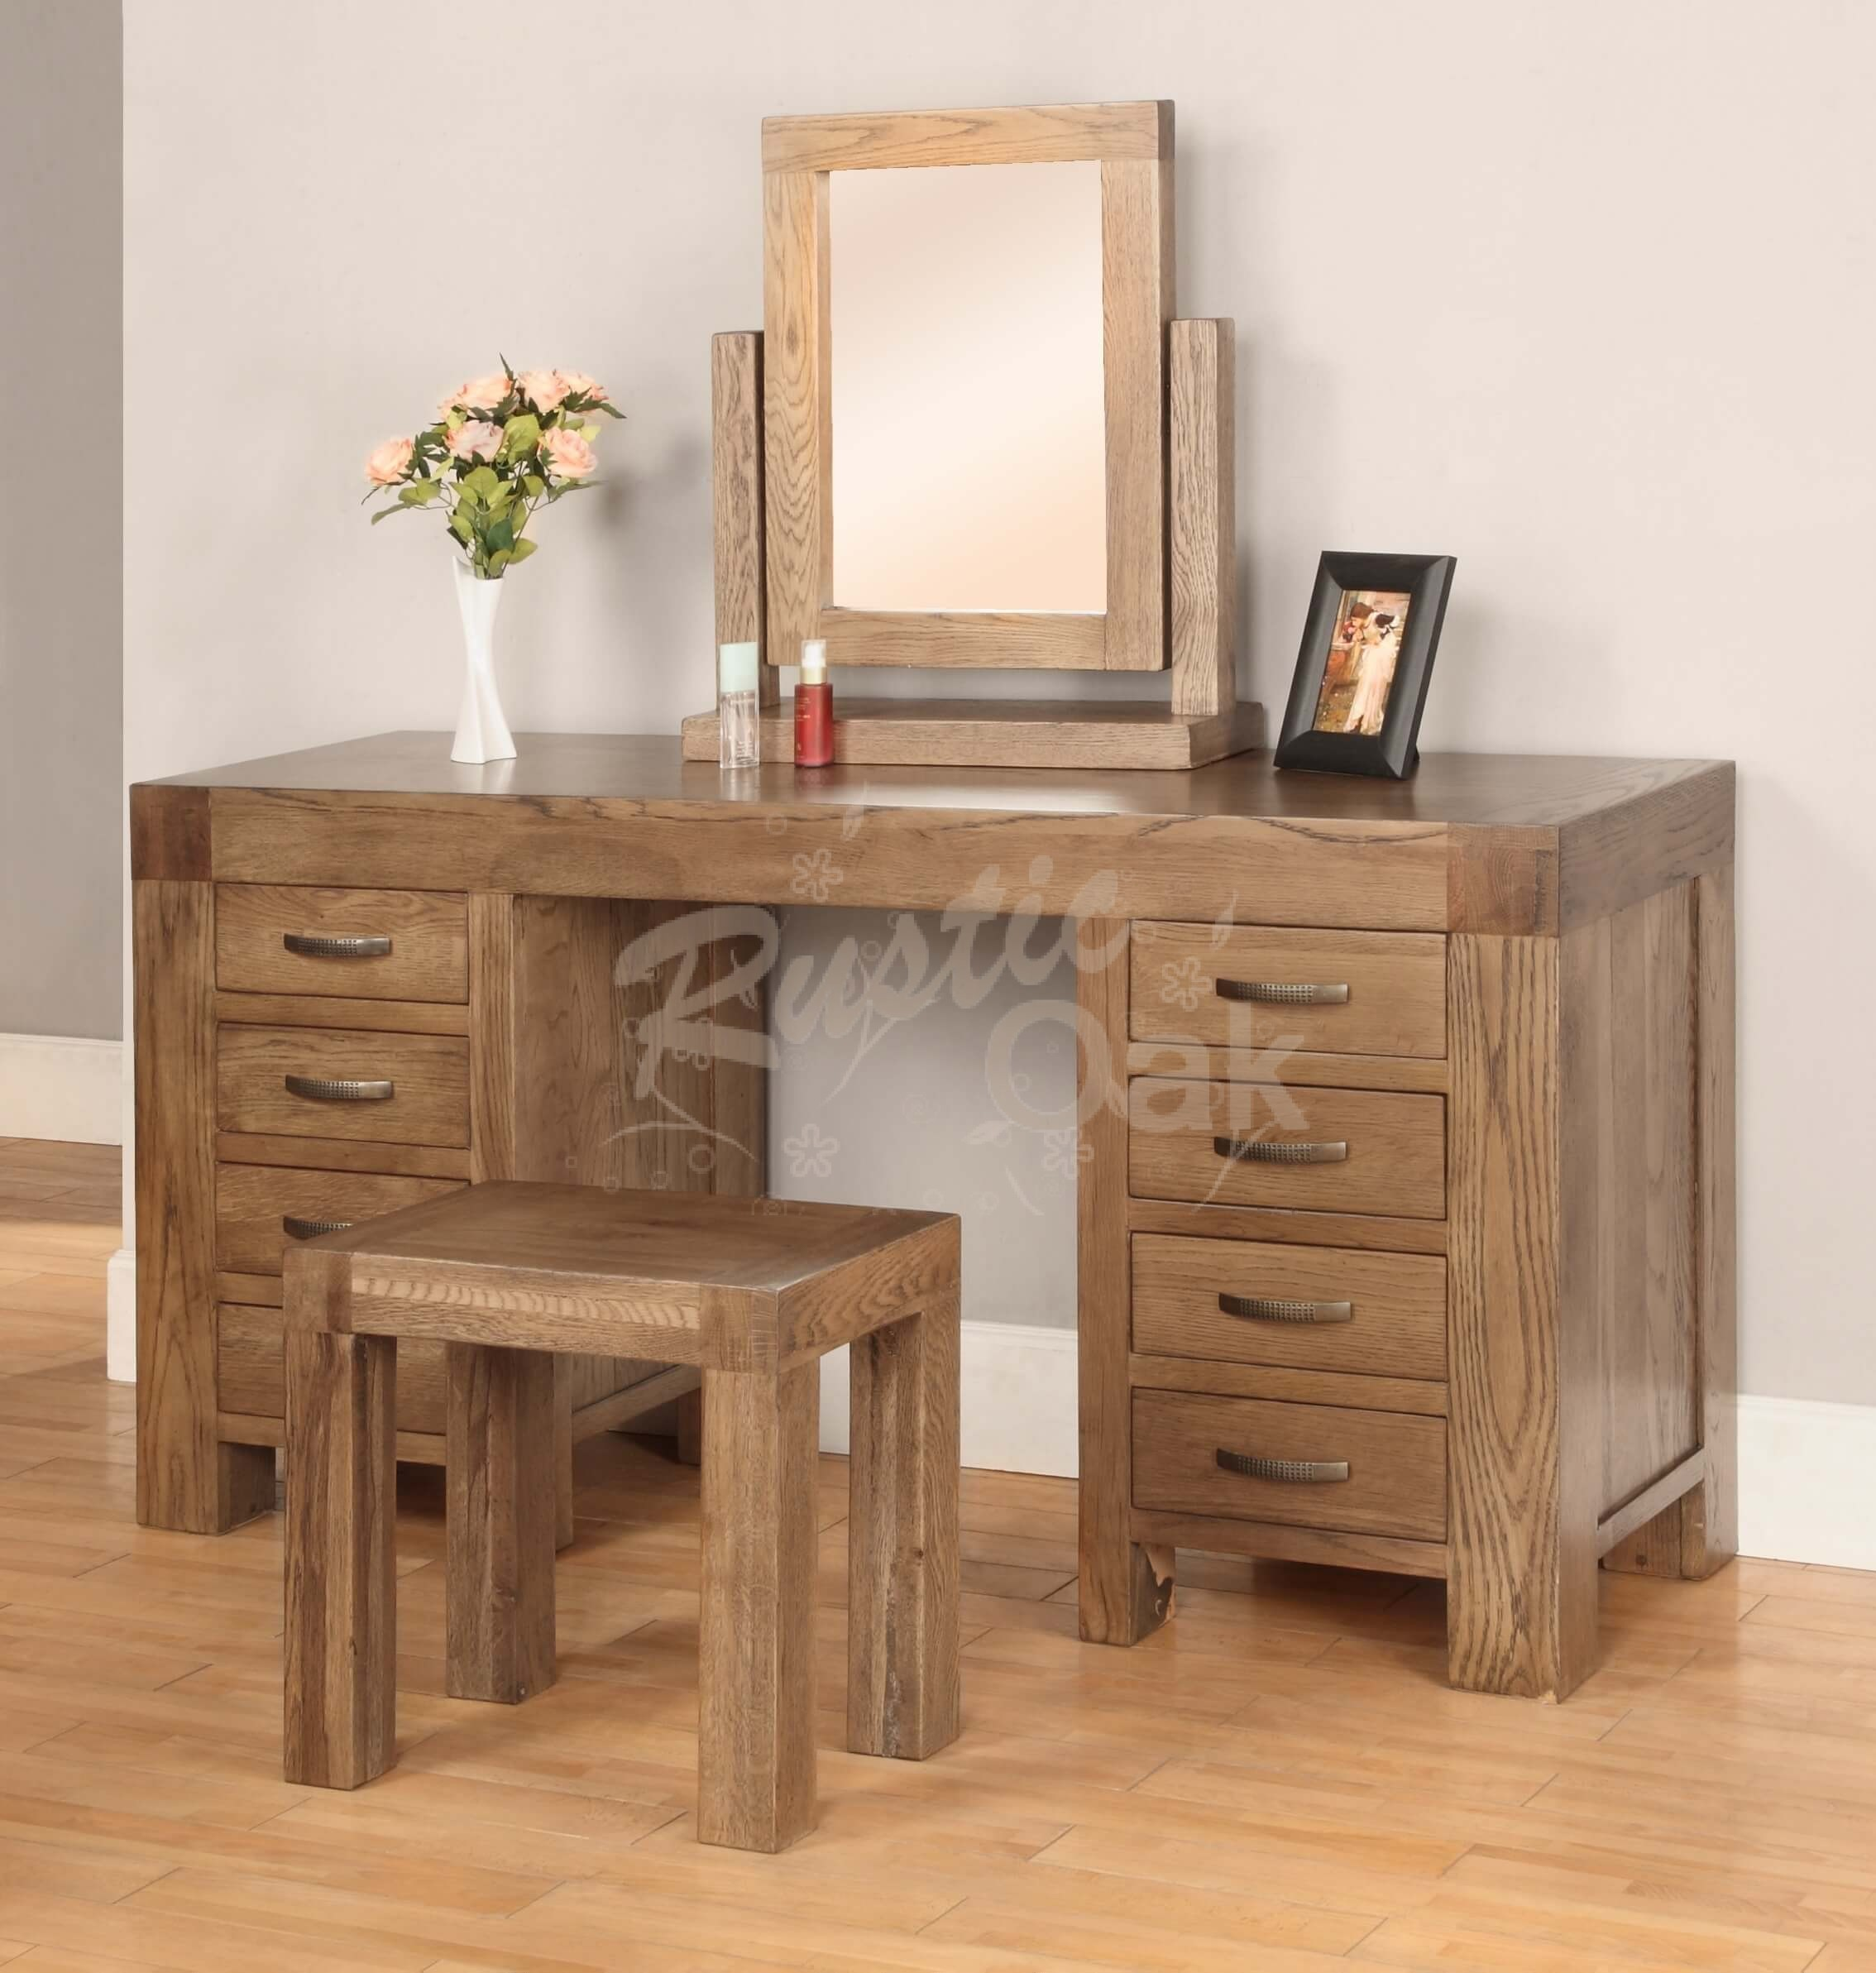 Santana Dressing Table Rustic Oak